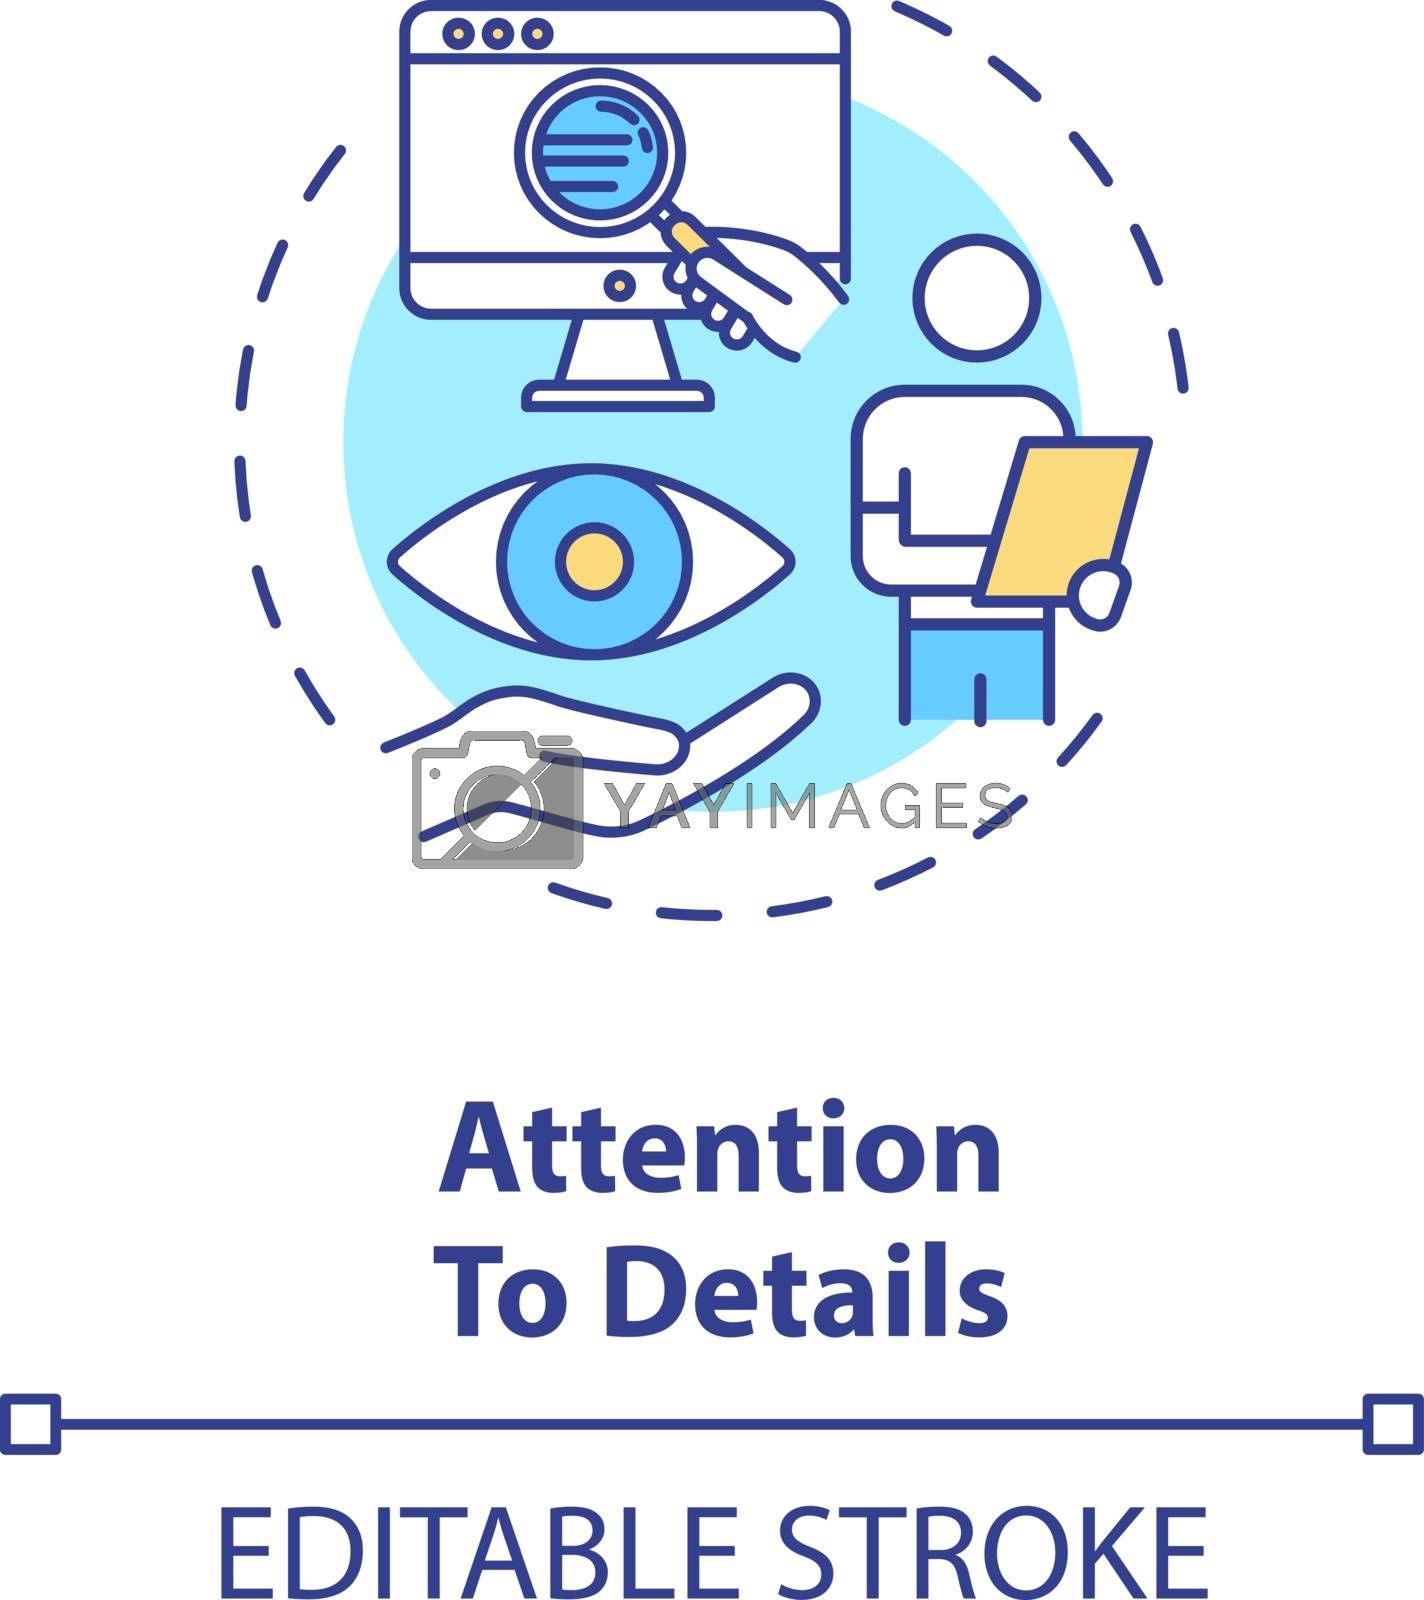 Attention to details concept icon by bsd